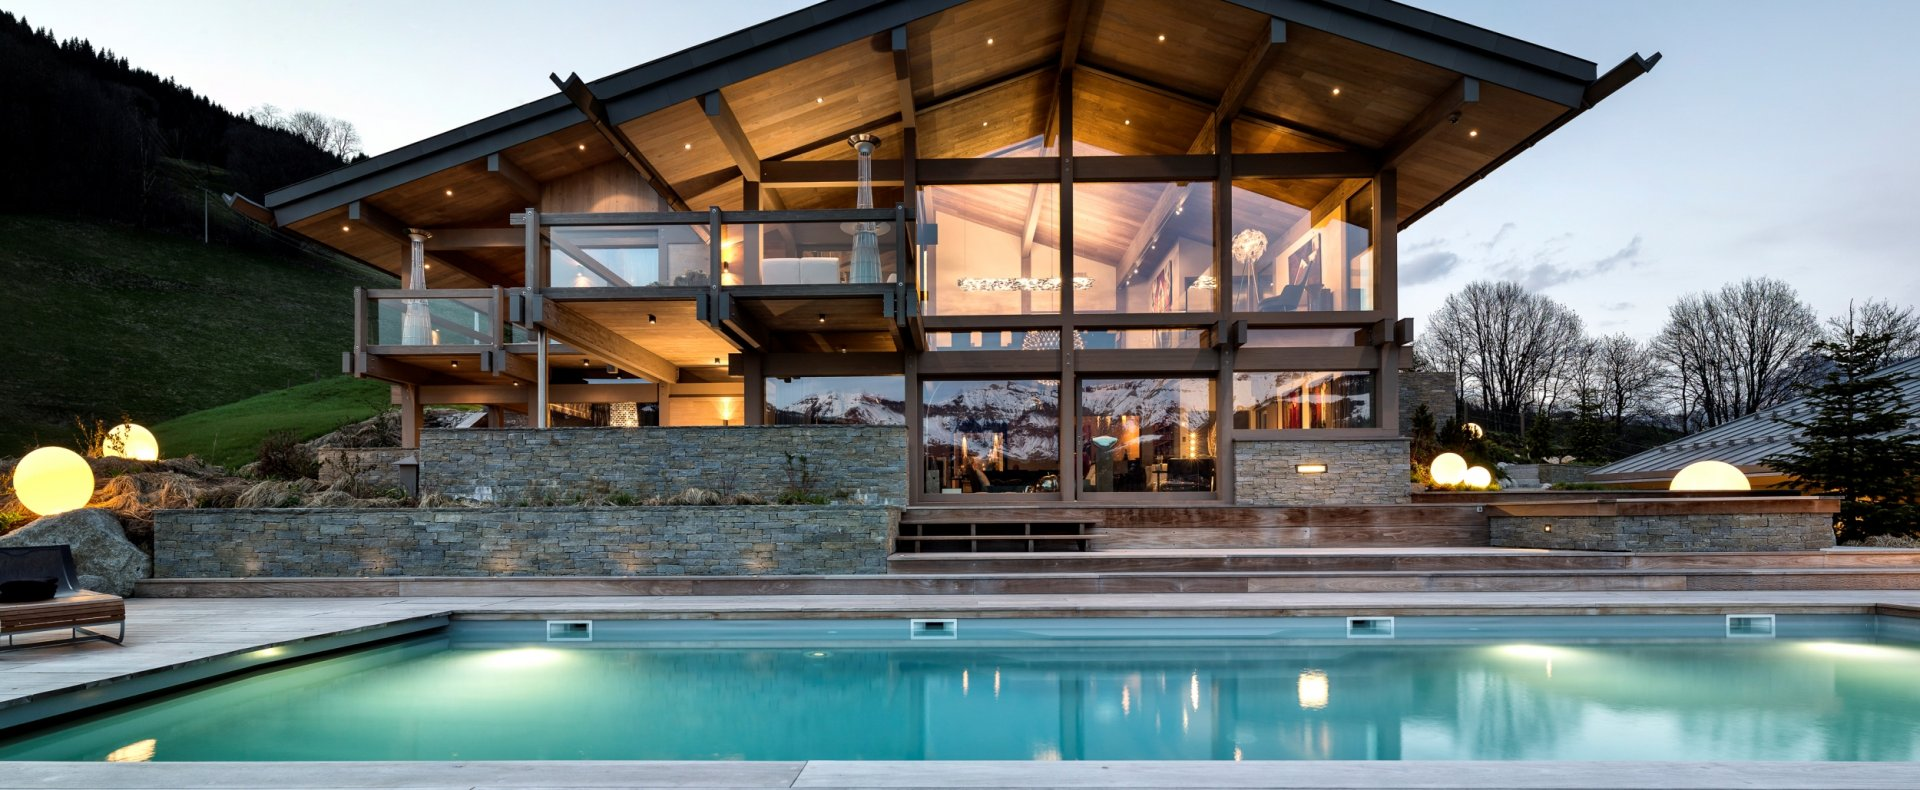 Luxury chalet mont blanc megeve france luxury ski chalets ultimate luxury chalets - Chalet modern design ...